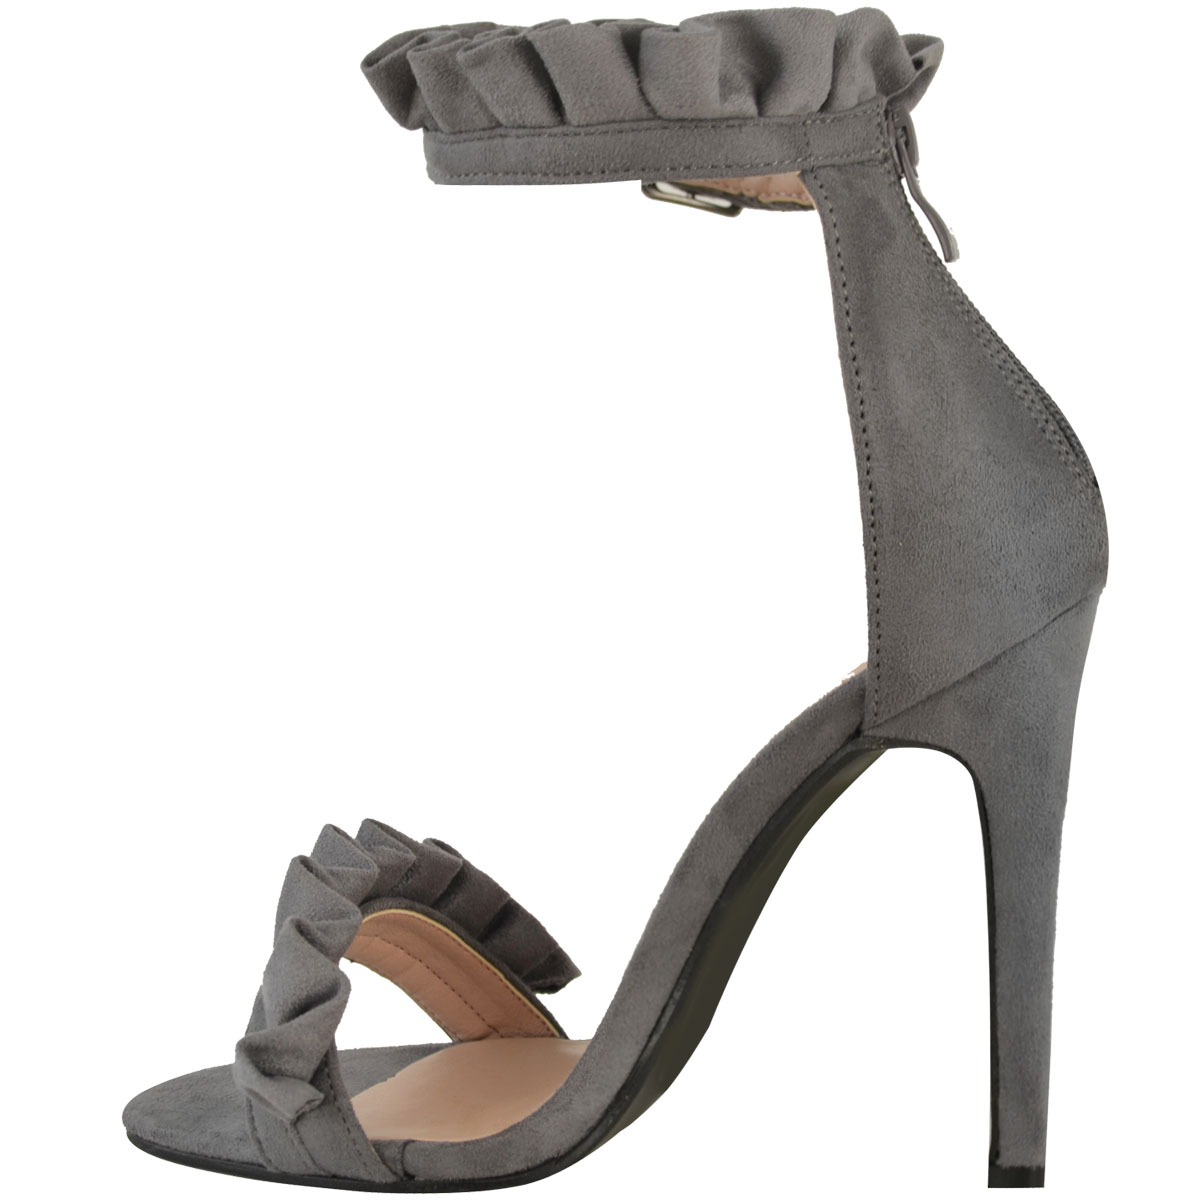 Womens Ladies High Heel Barely There Ruffle Frill Rose Party Sandals Shoes Size